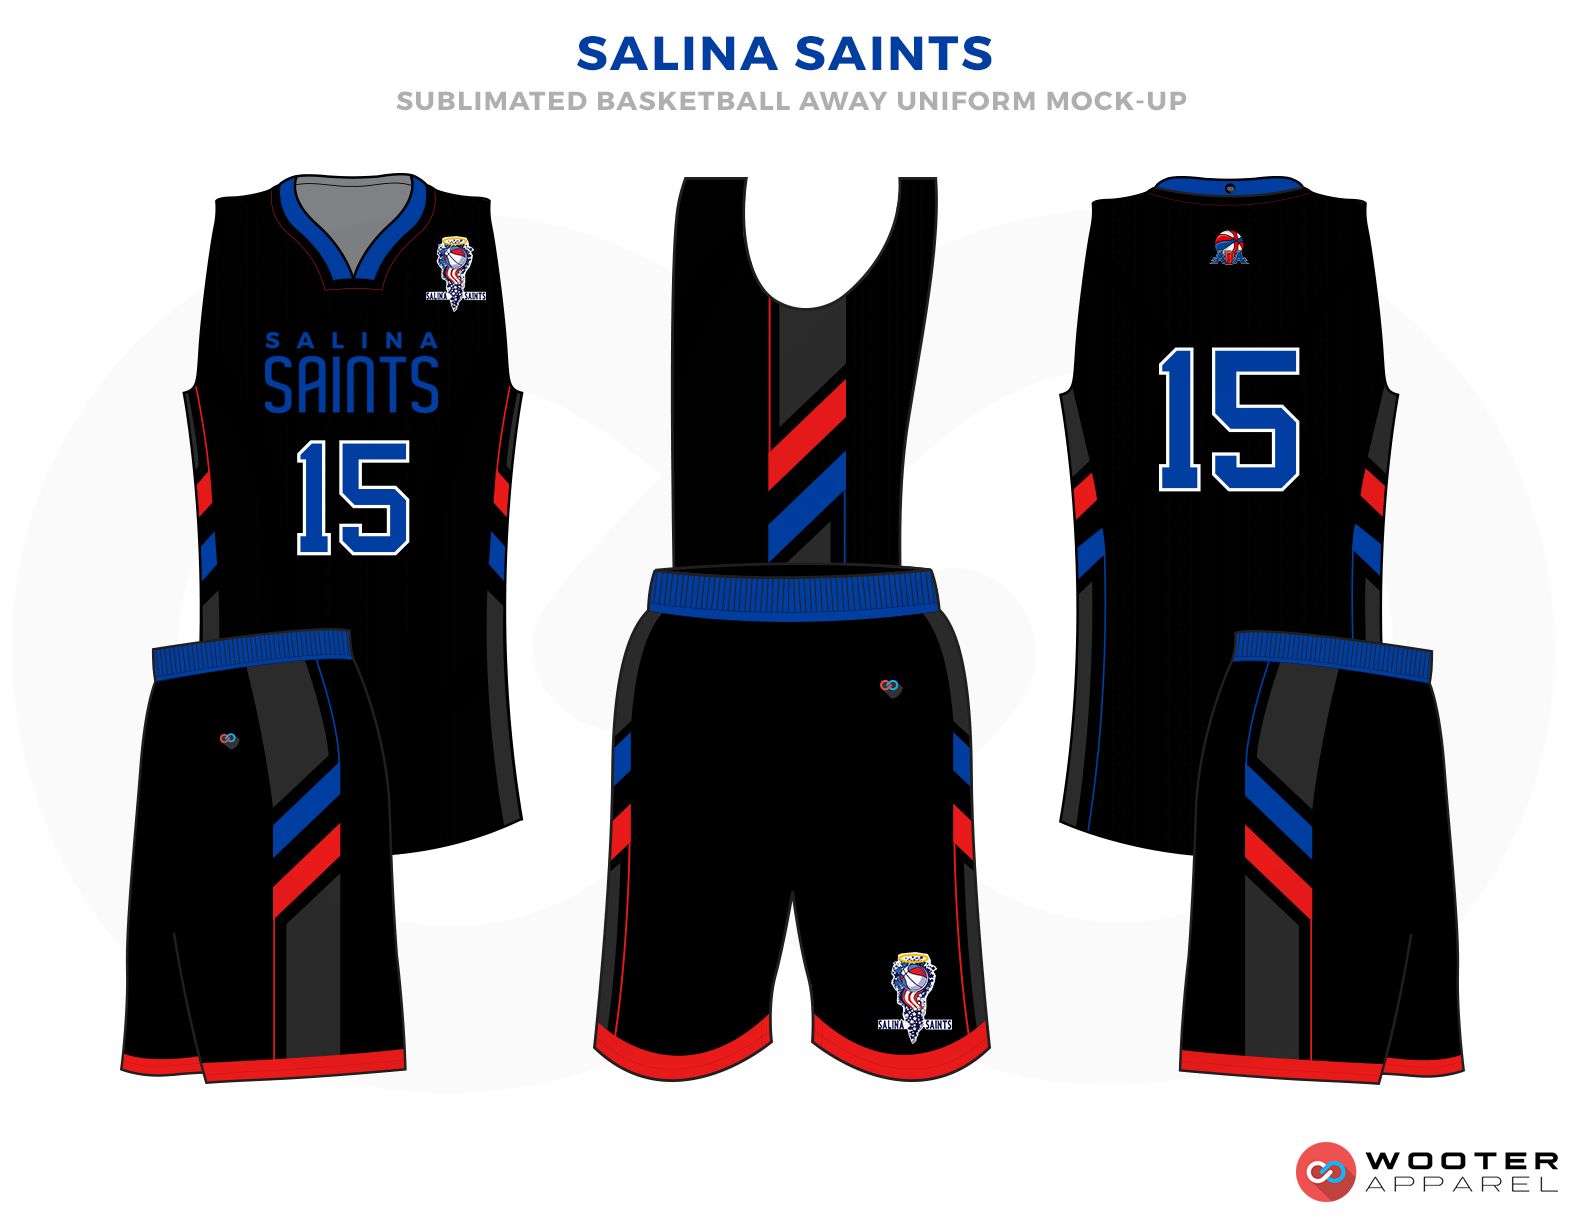 SALINA SAINTS Black Red and White Basketball Uniforms, Jersey and shorts